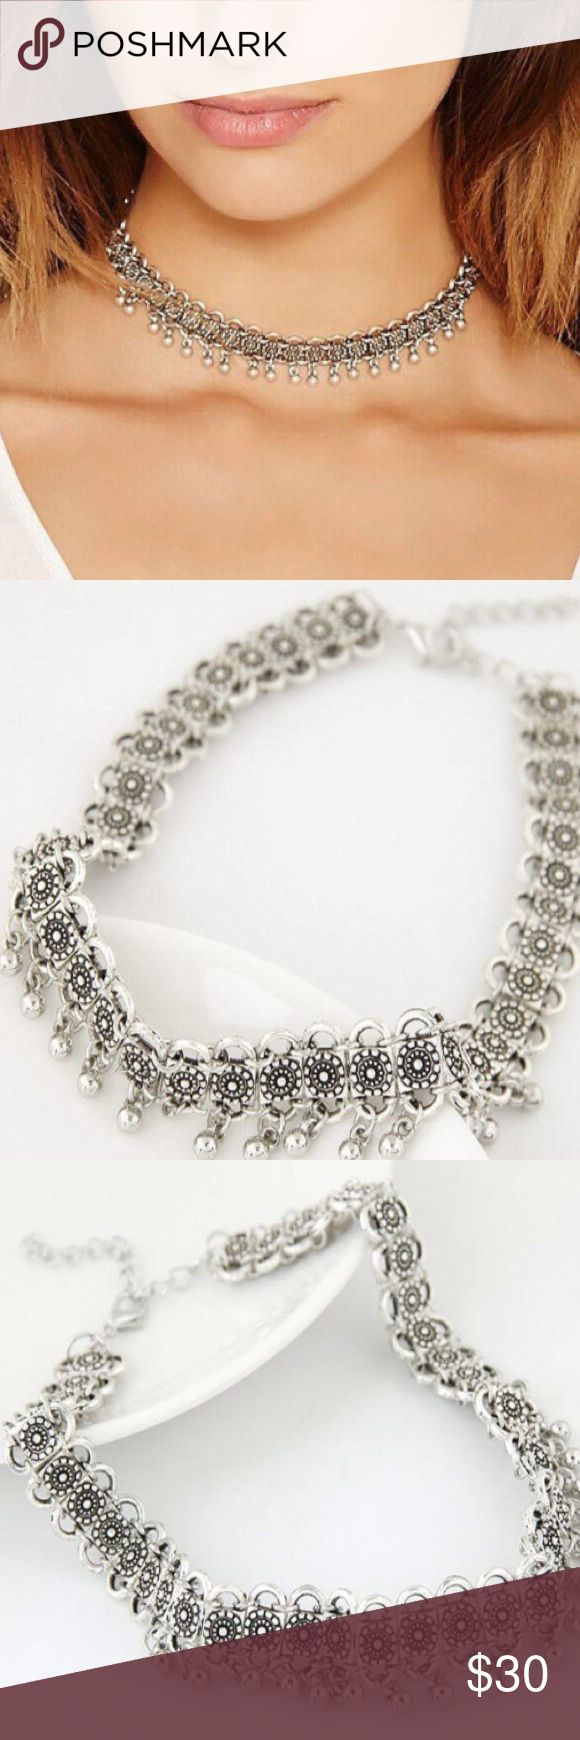 Silver chain boho choker beaded festival necklace! Never used. Free People Jewelry Necklaces